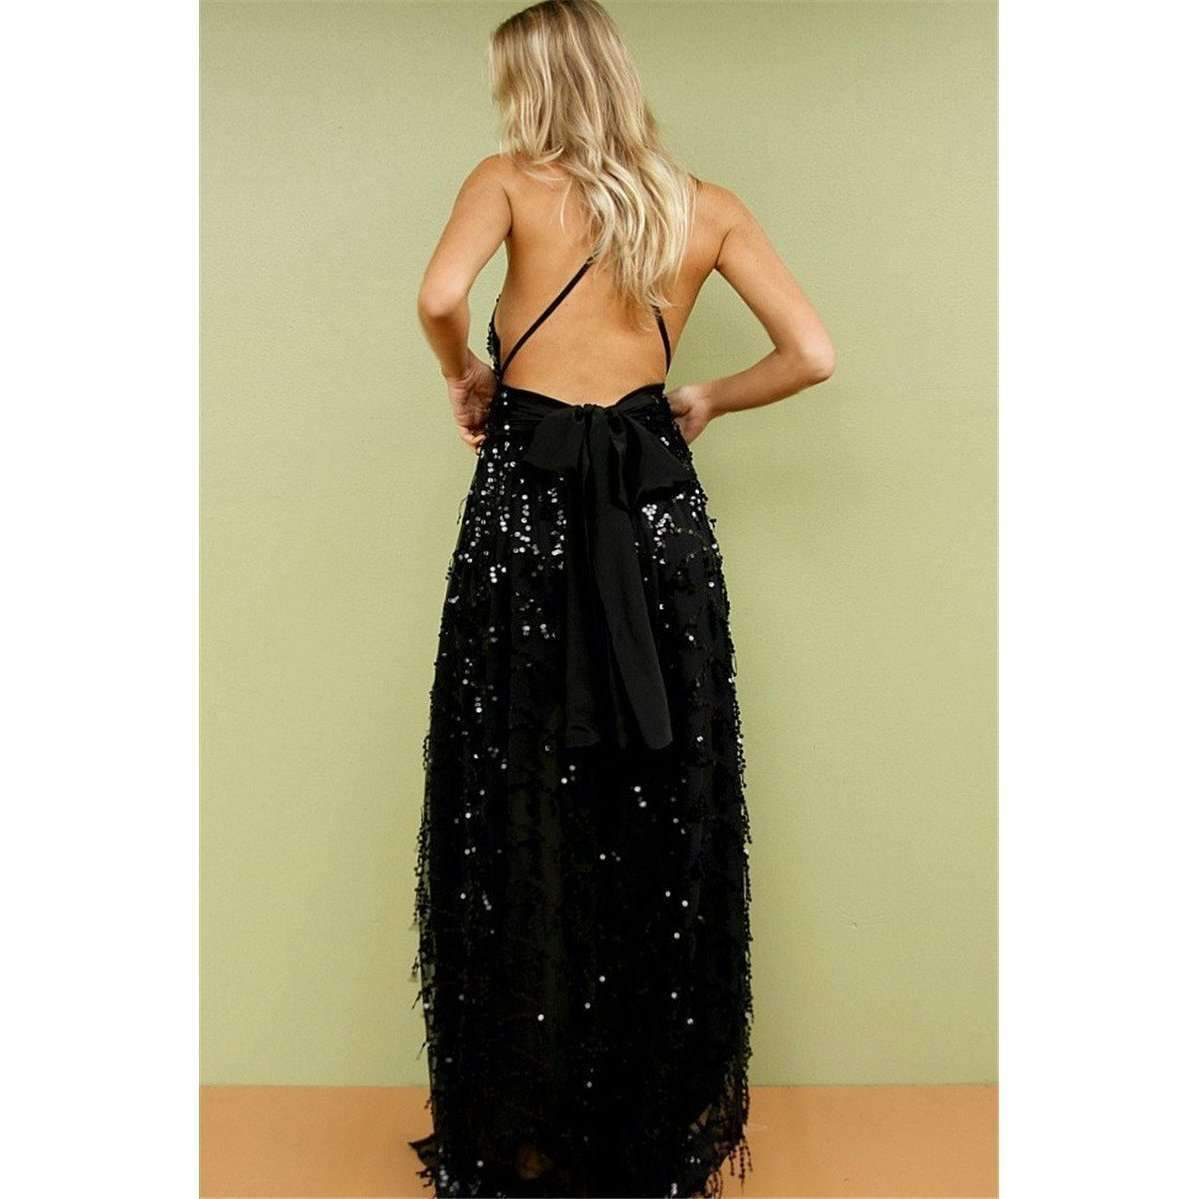 Shimmering Backless Sequined Women Party Long Dress